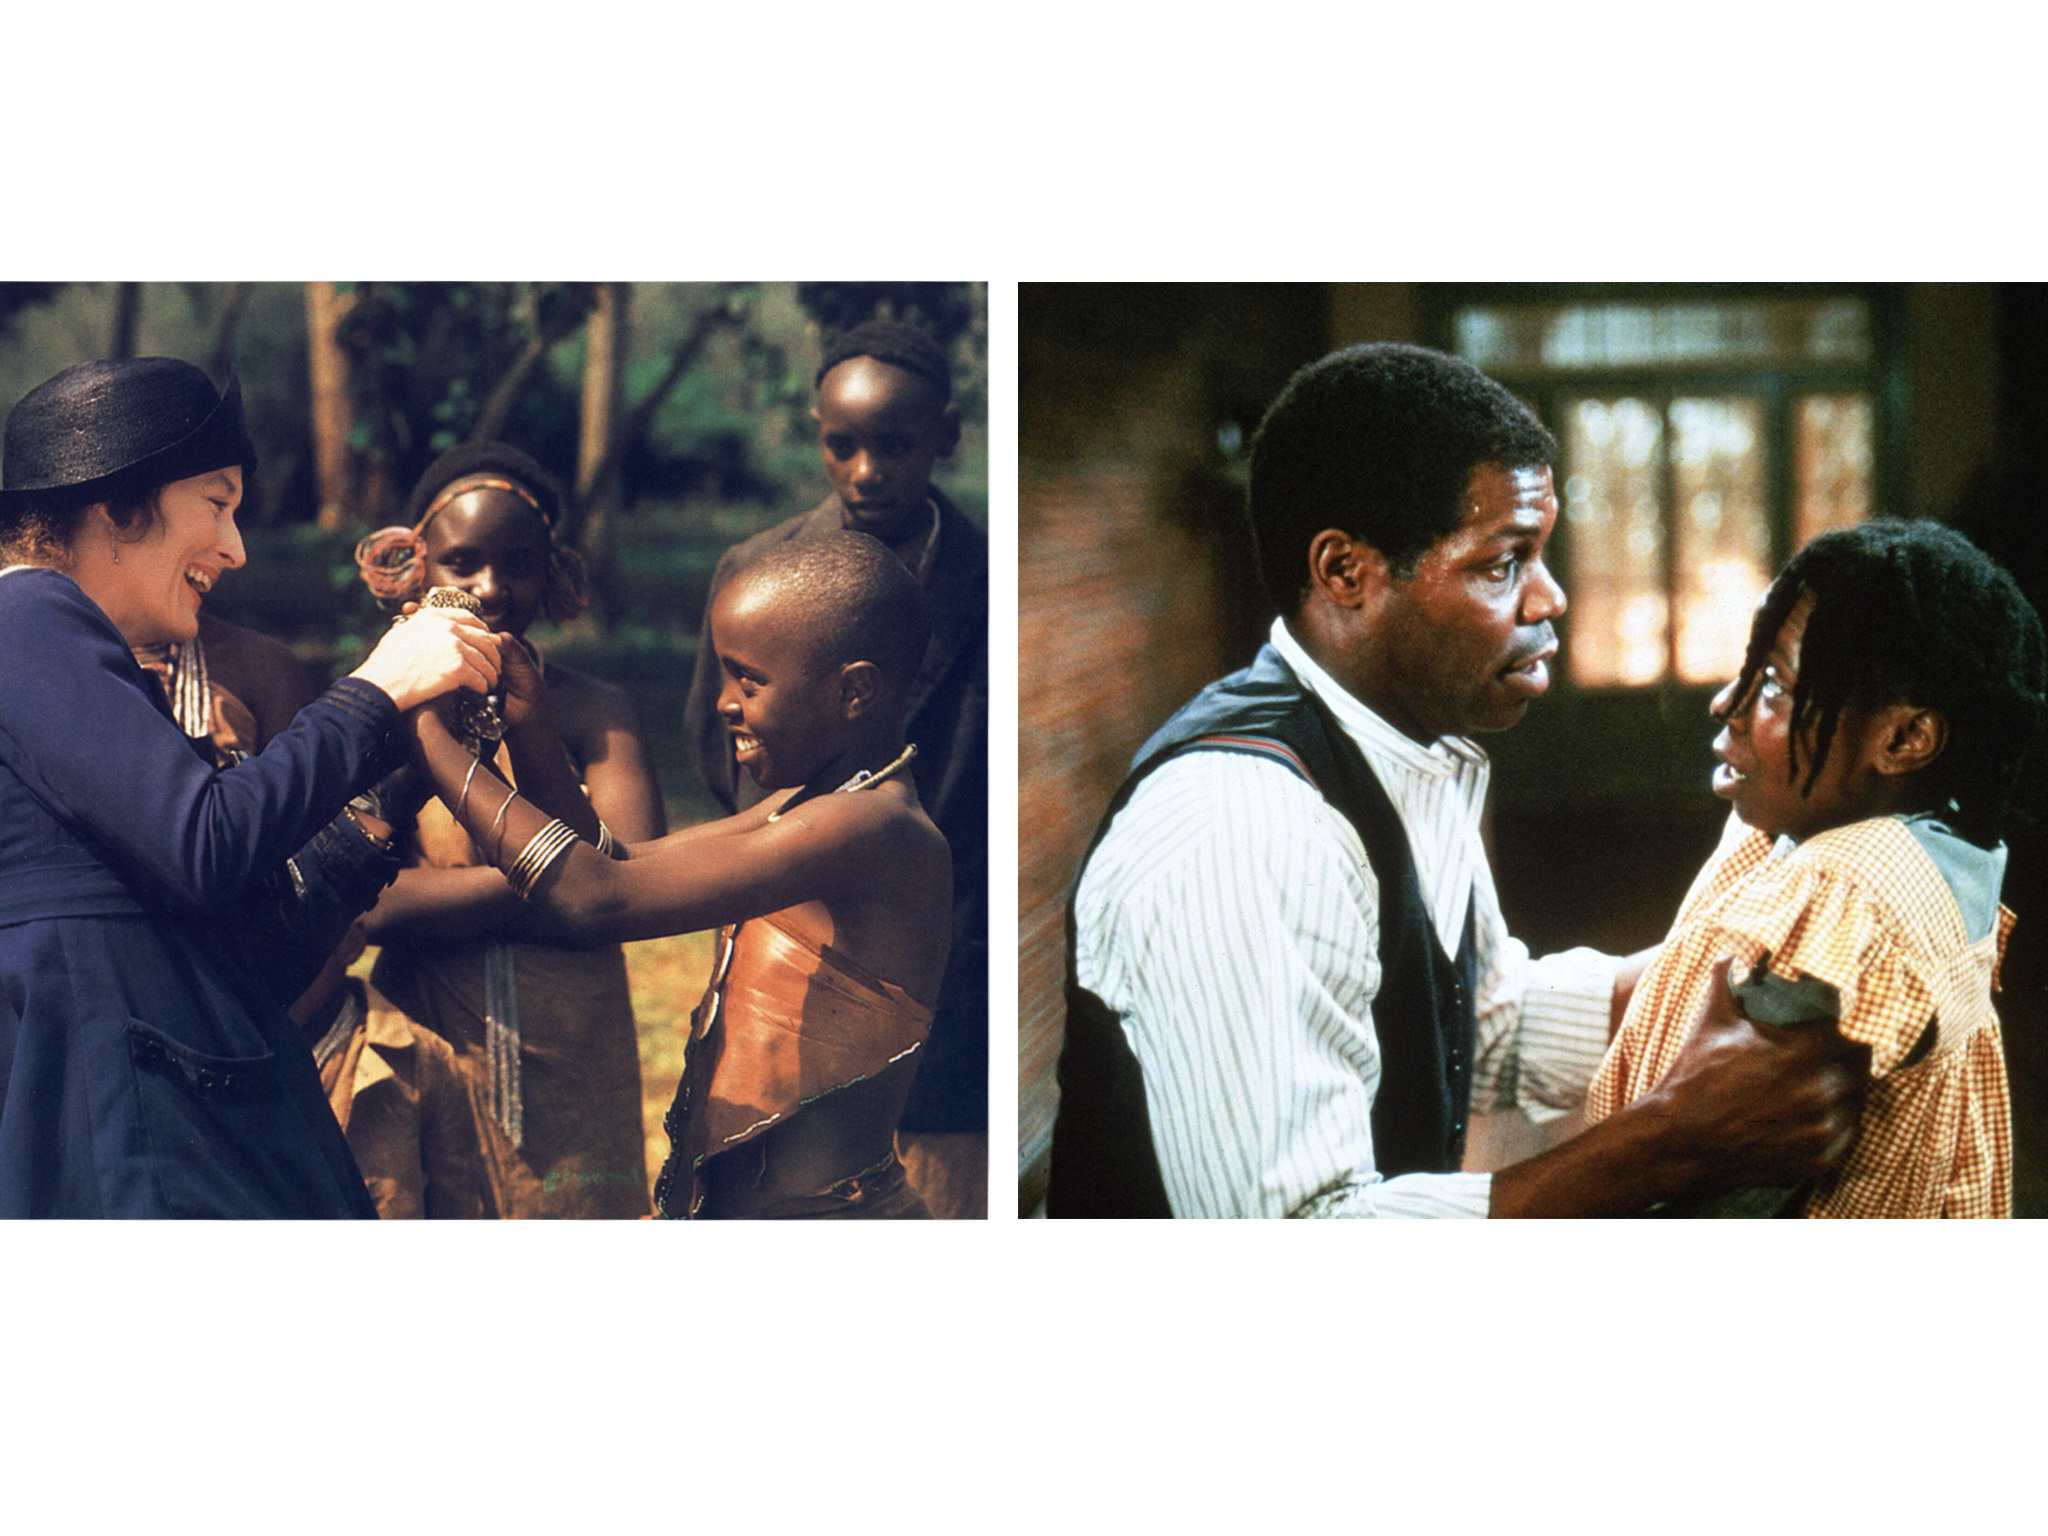 1985: Out of Africa vs The Color Purple